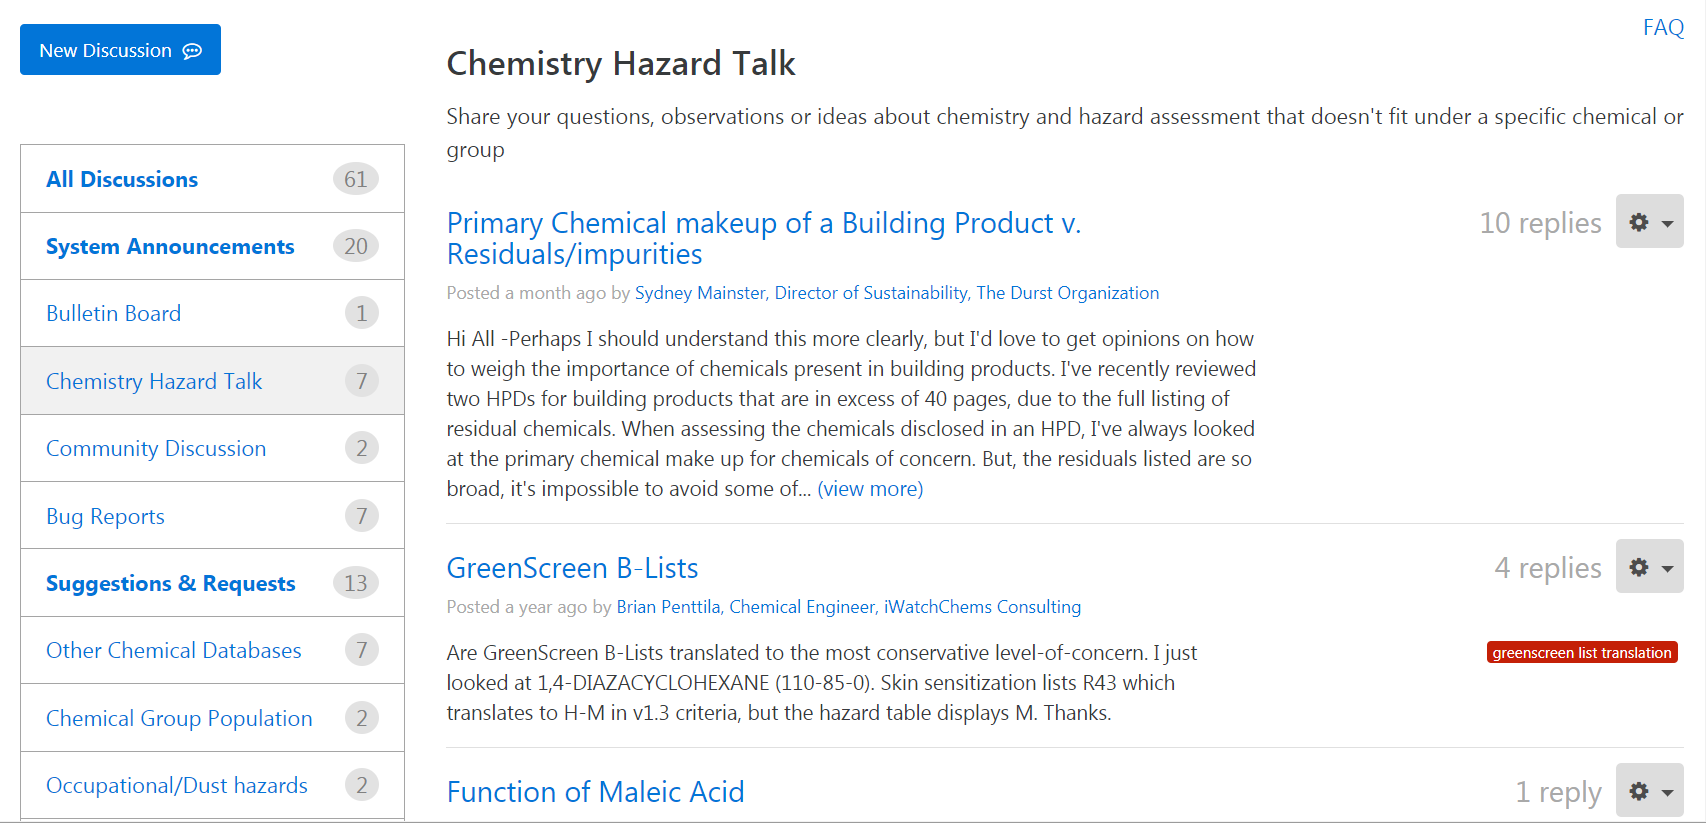 Chemical Hazard Data Commons by HBN - Discussions